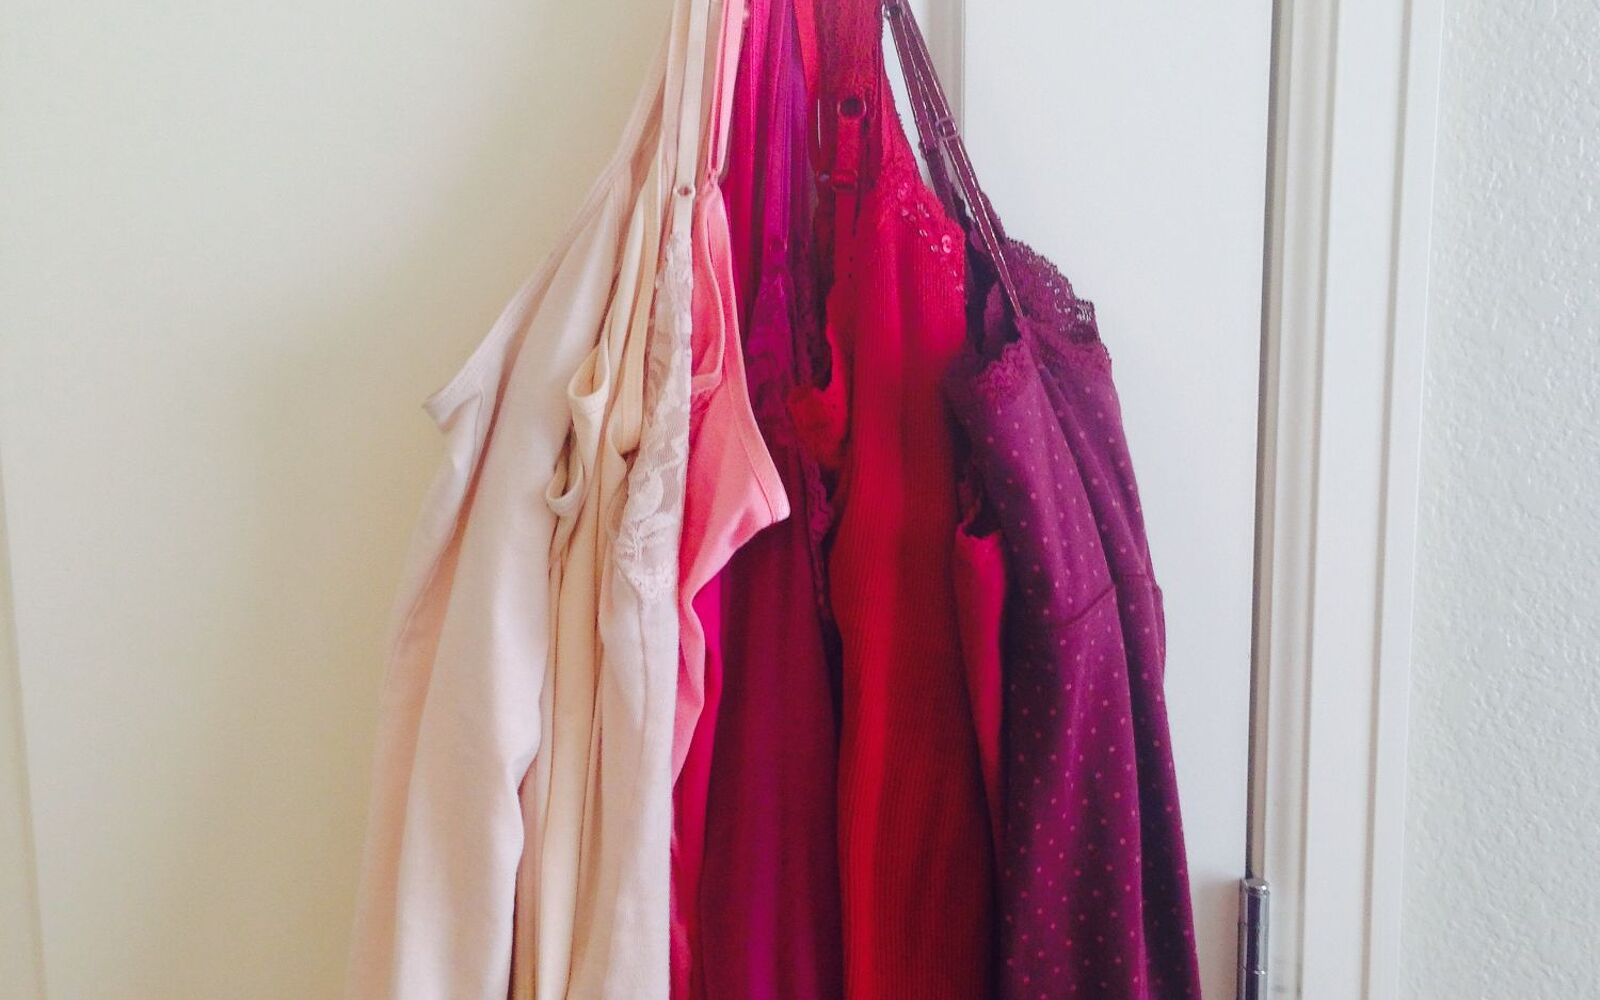 s 30 fun ways to keep your home organized, Organize Your Camis With A Hook